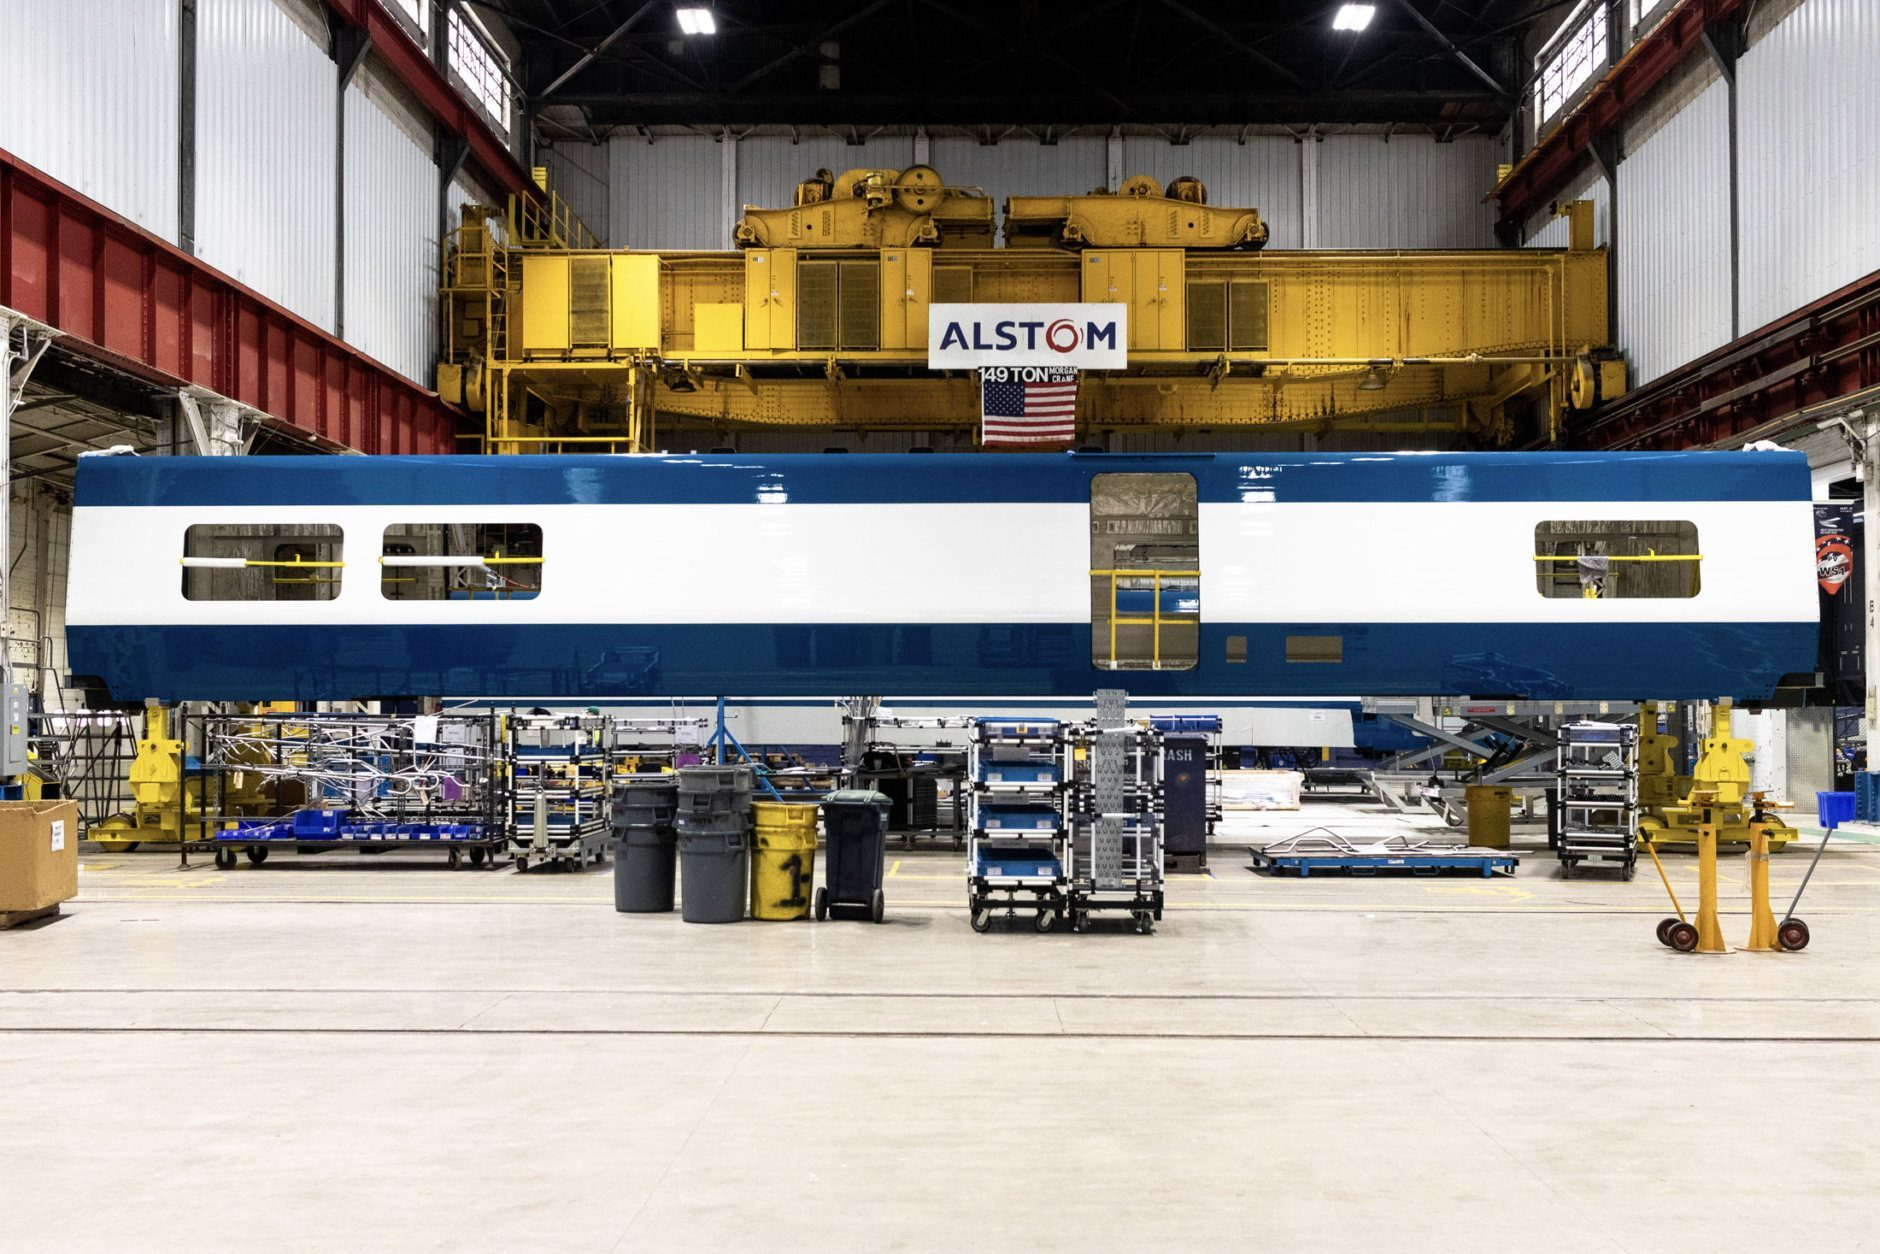 The first prototype of the new Acelas will be ready for testing later this year and will go into passenger service toward the end of 2022. They will carry 30% more passengers and reach 160 mph. (Courtesy Amtrak)